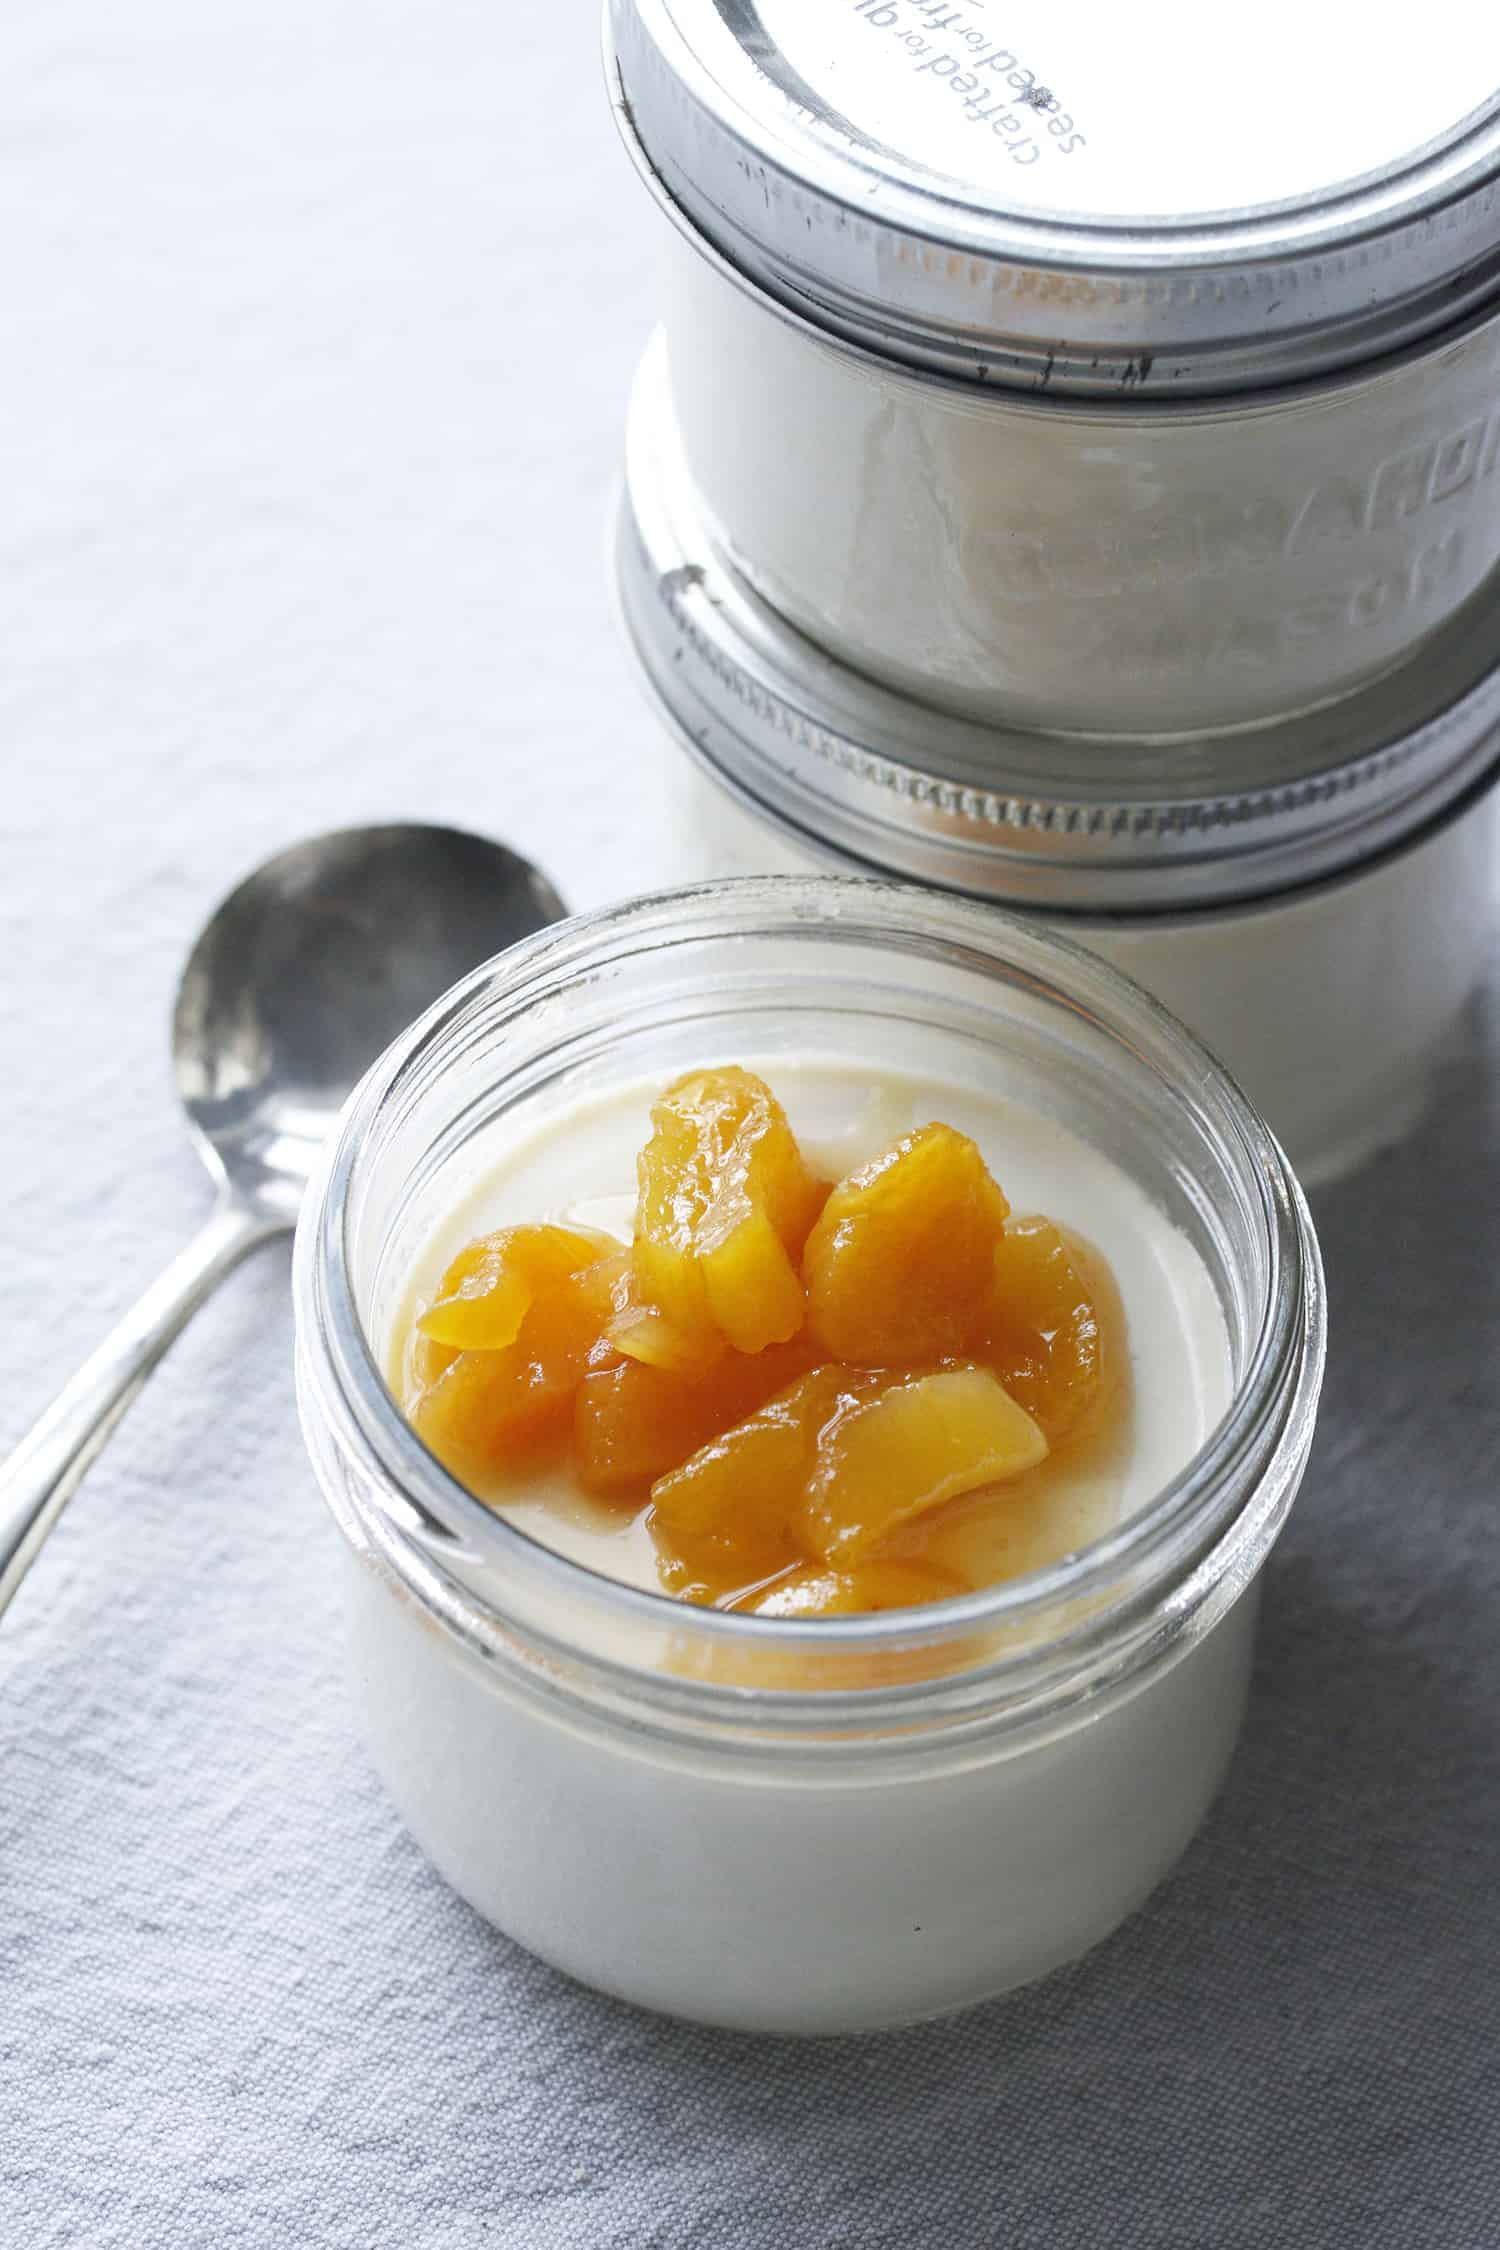 Ginger Panna Cotta with Apricot Compote